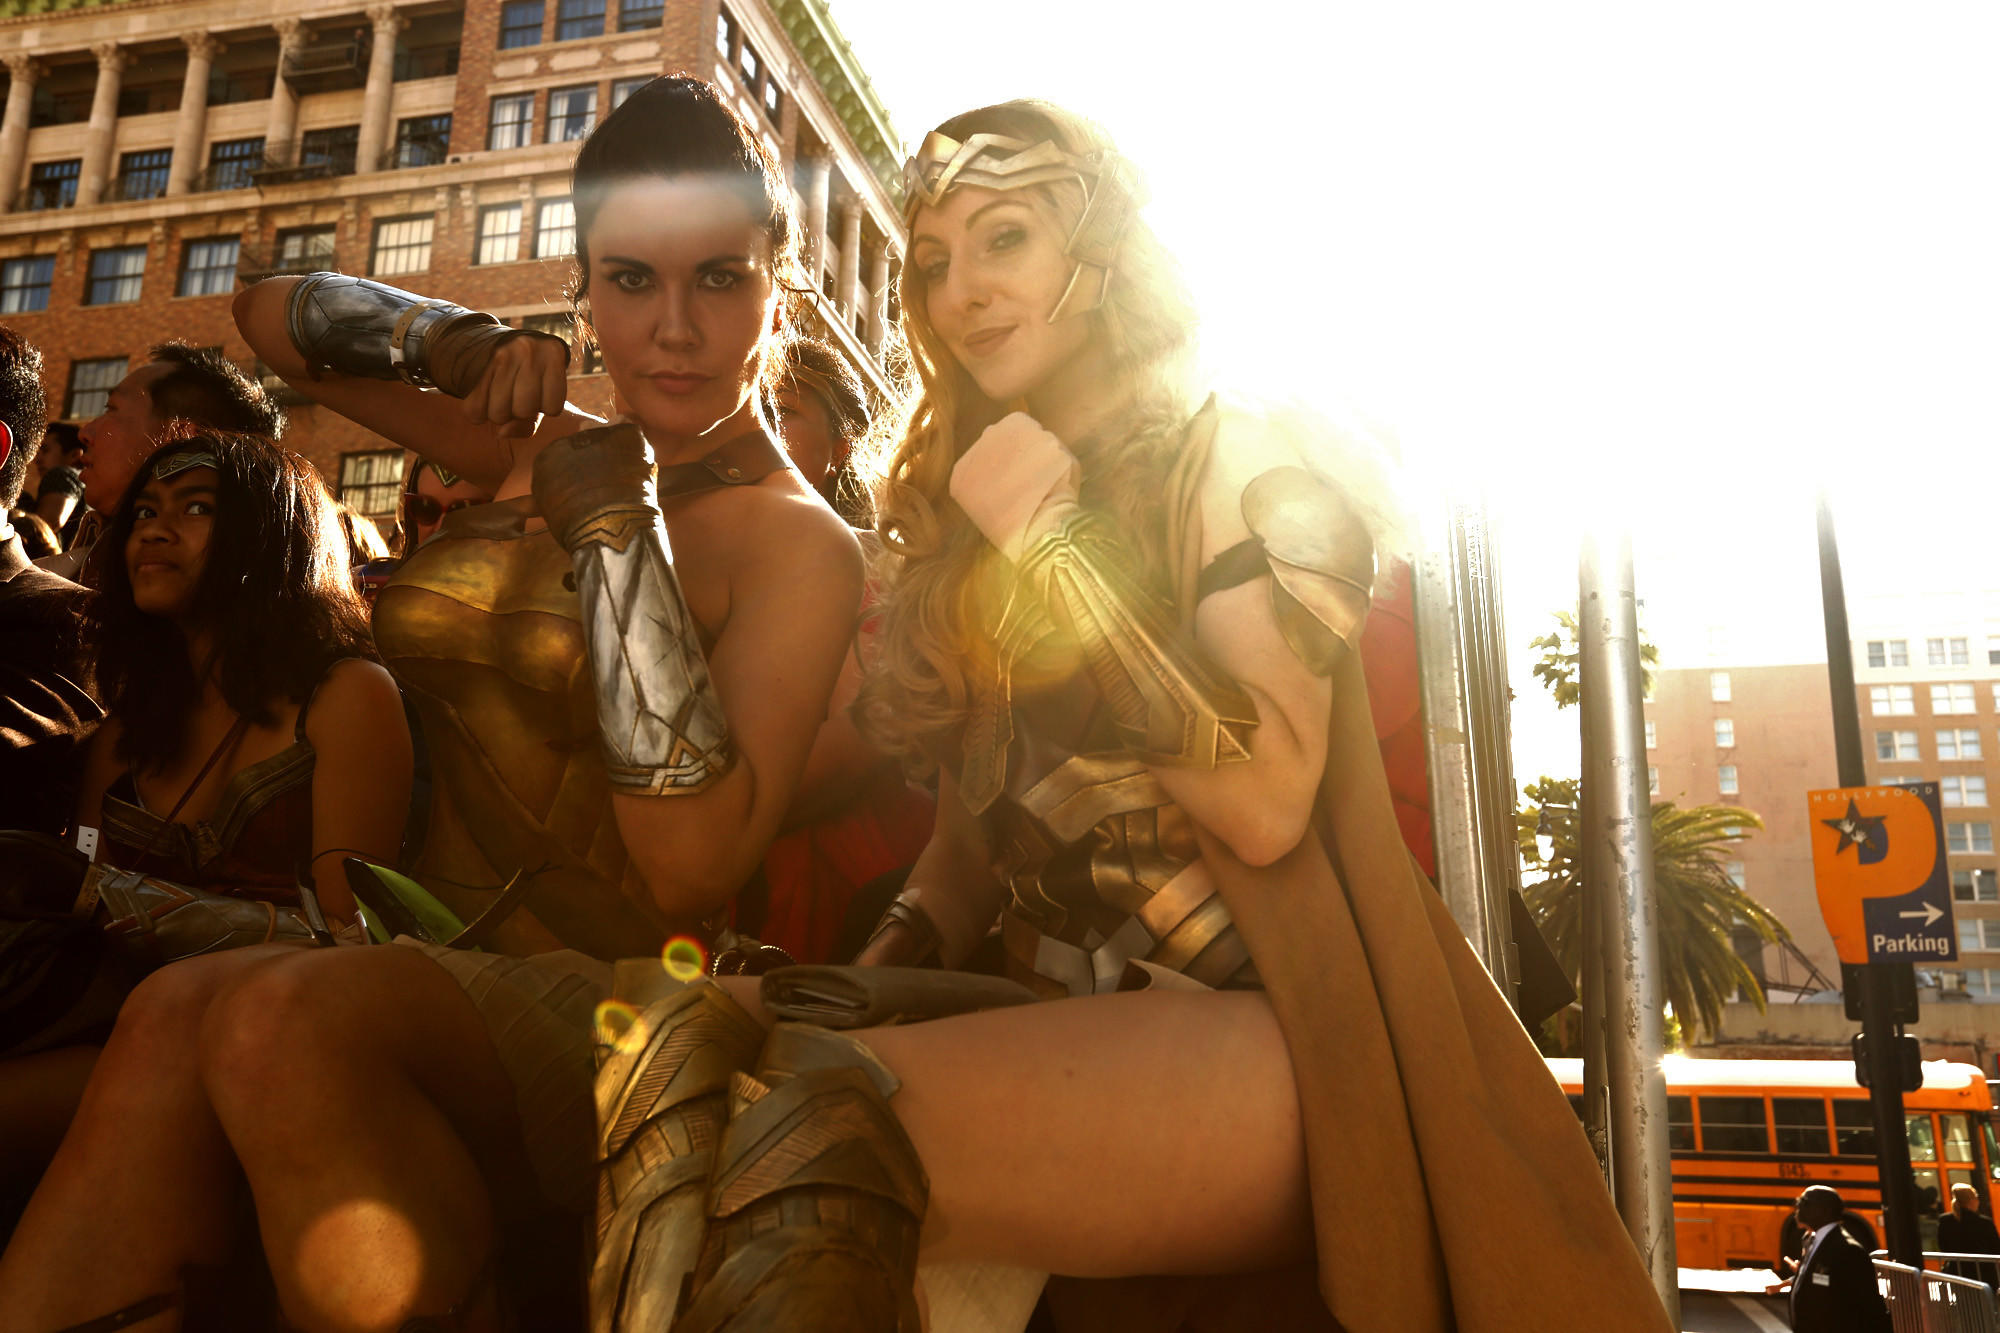 Victoria Ikerd from San Diego, left, and Sylvia Vale from Culver City strike their best Wonder Woman pose. (Genaro Molina / Los Angeles Times)